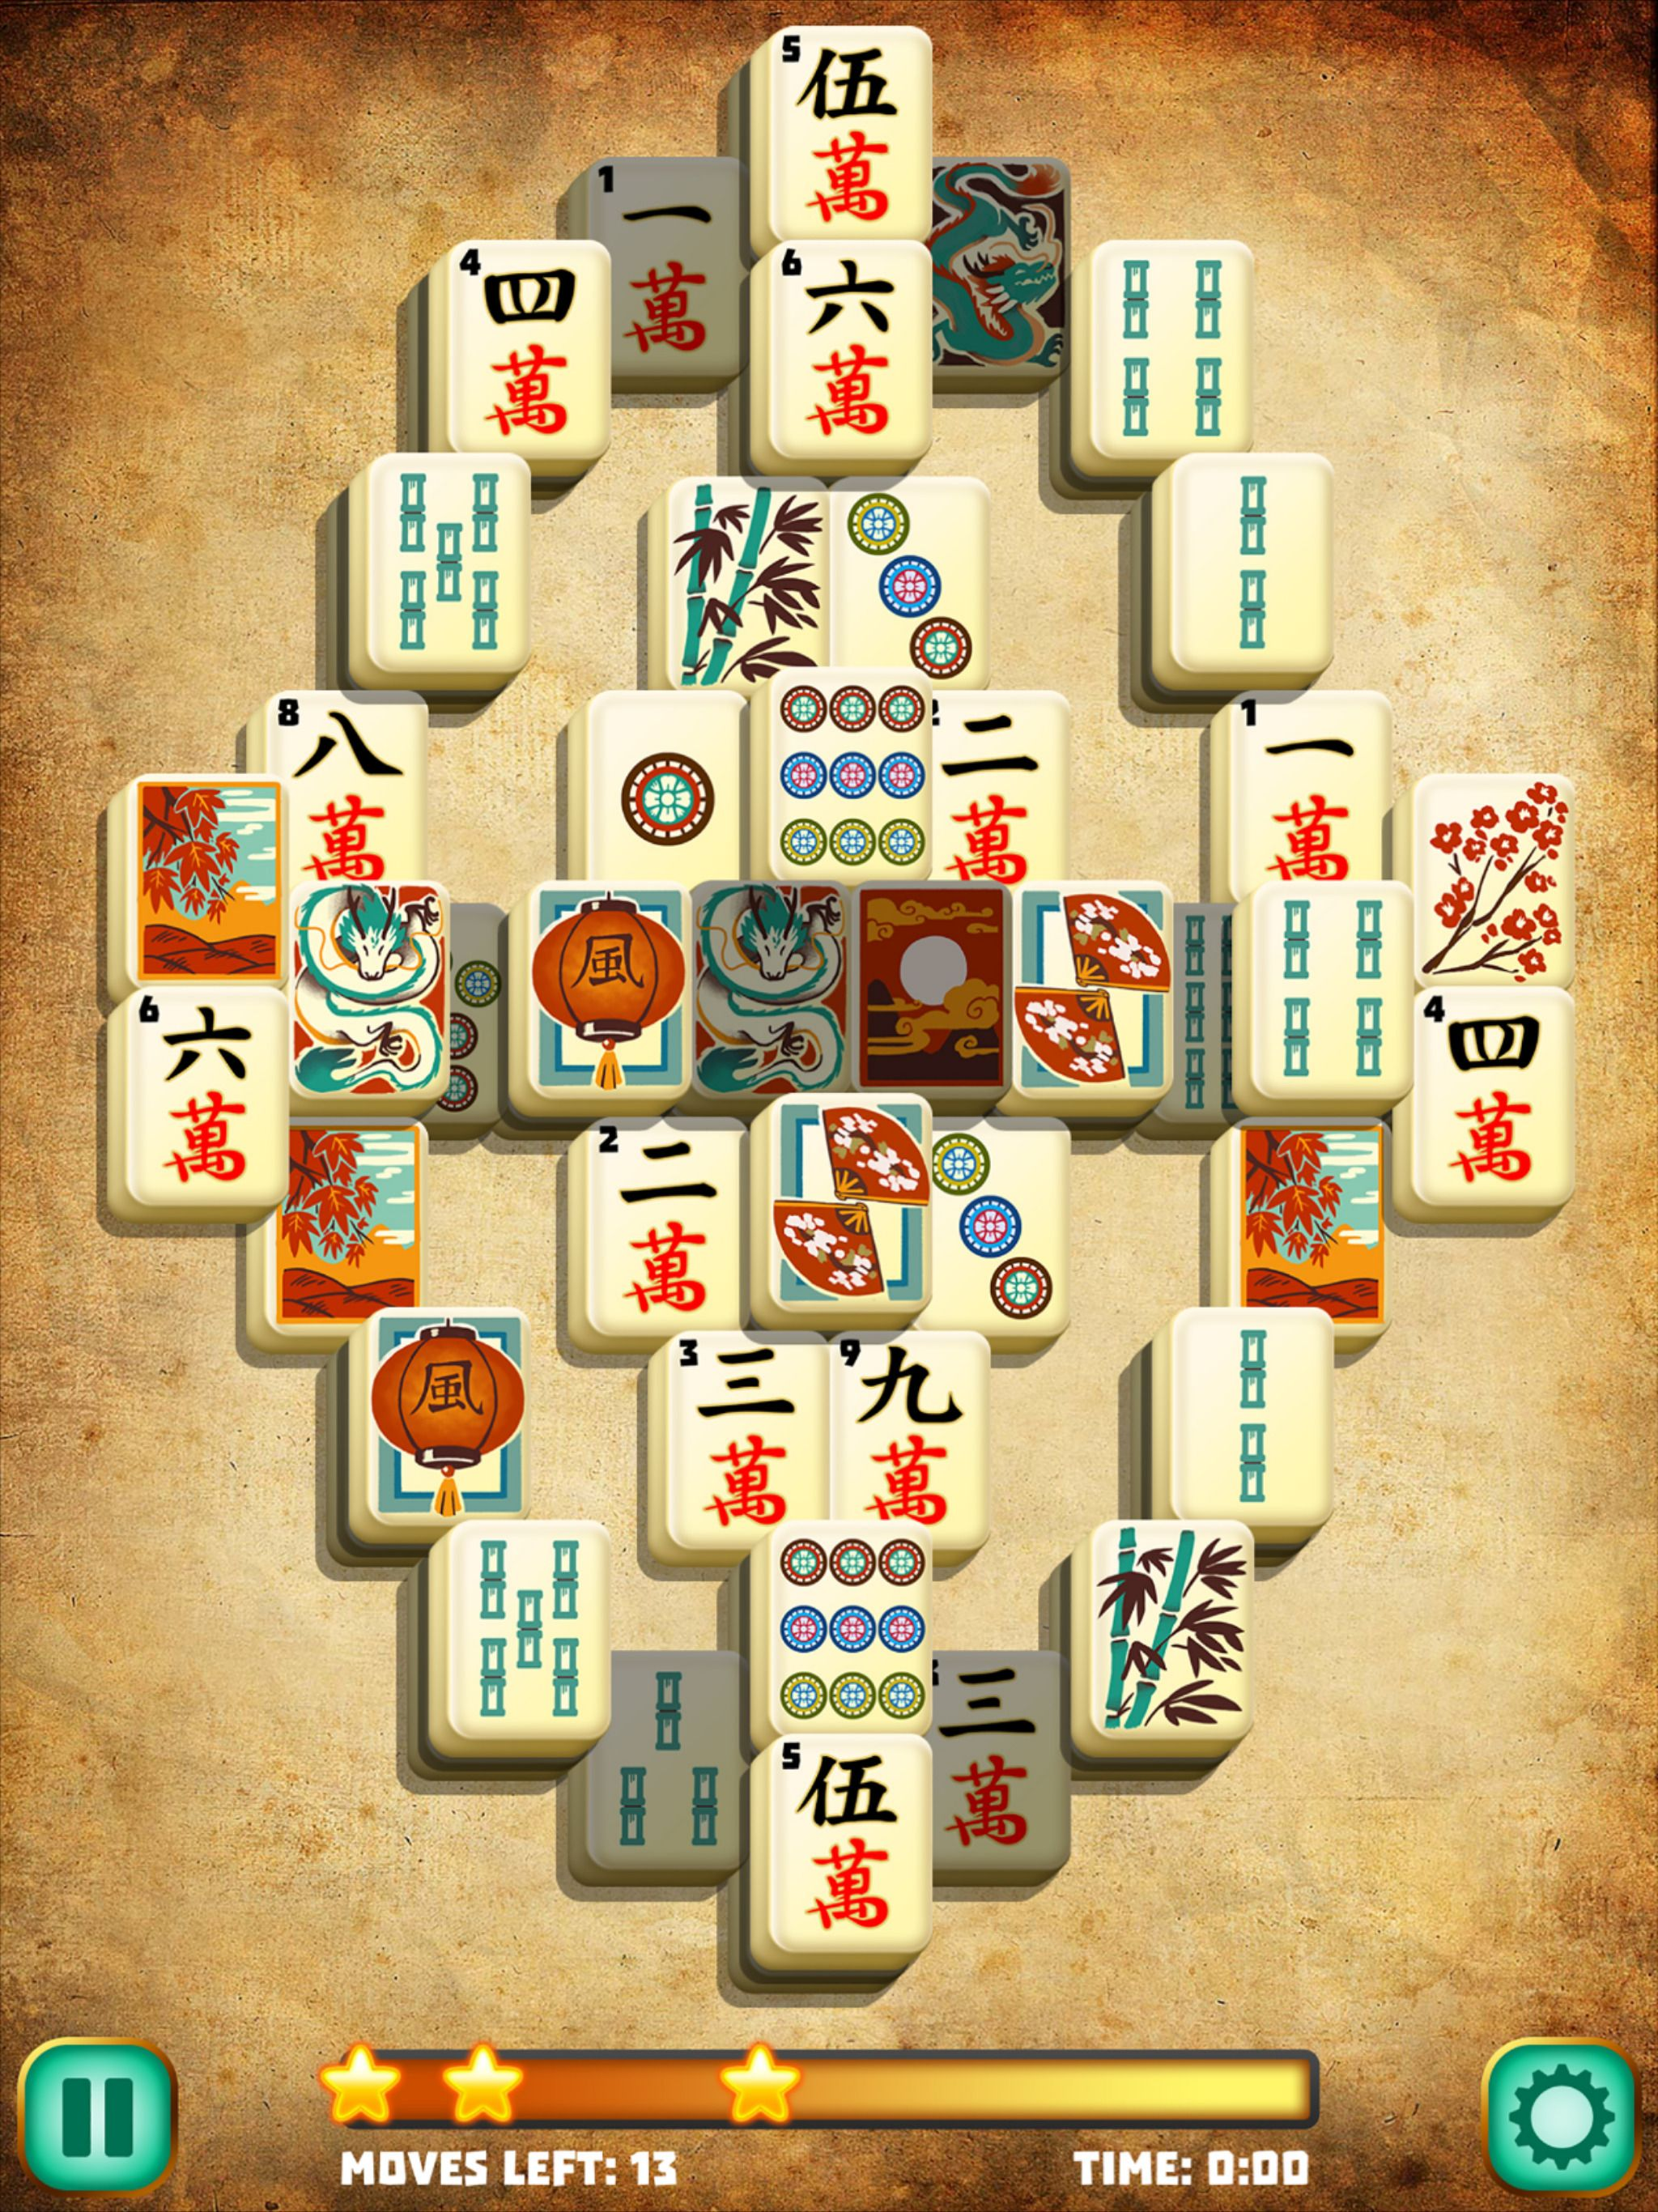 No annoying ads! Just relax and play Mahjong! From the